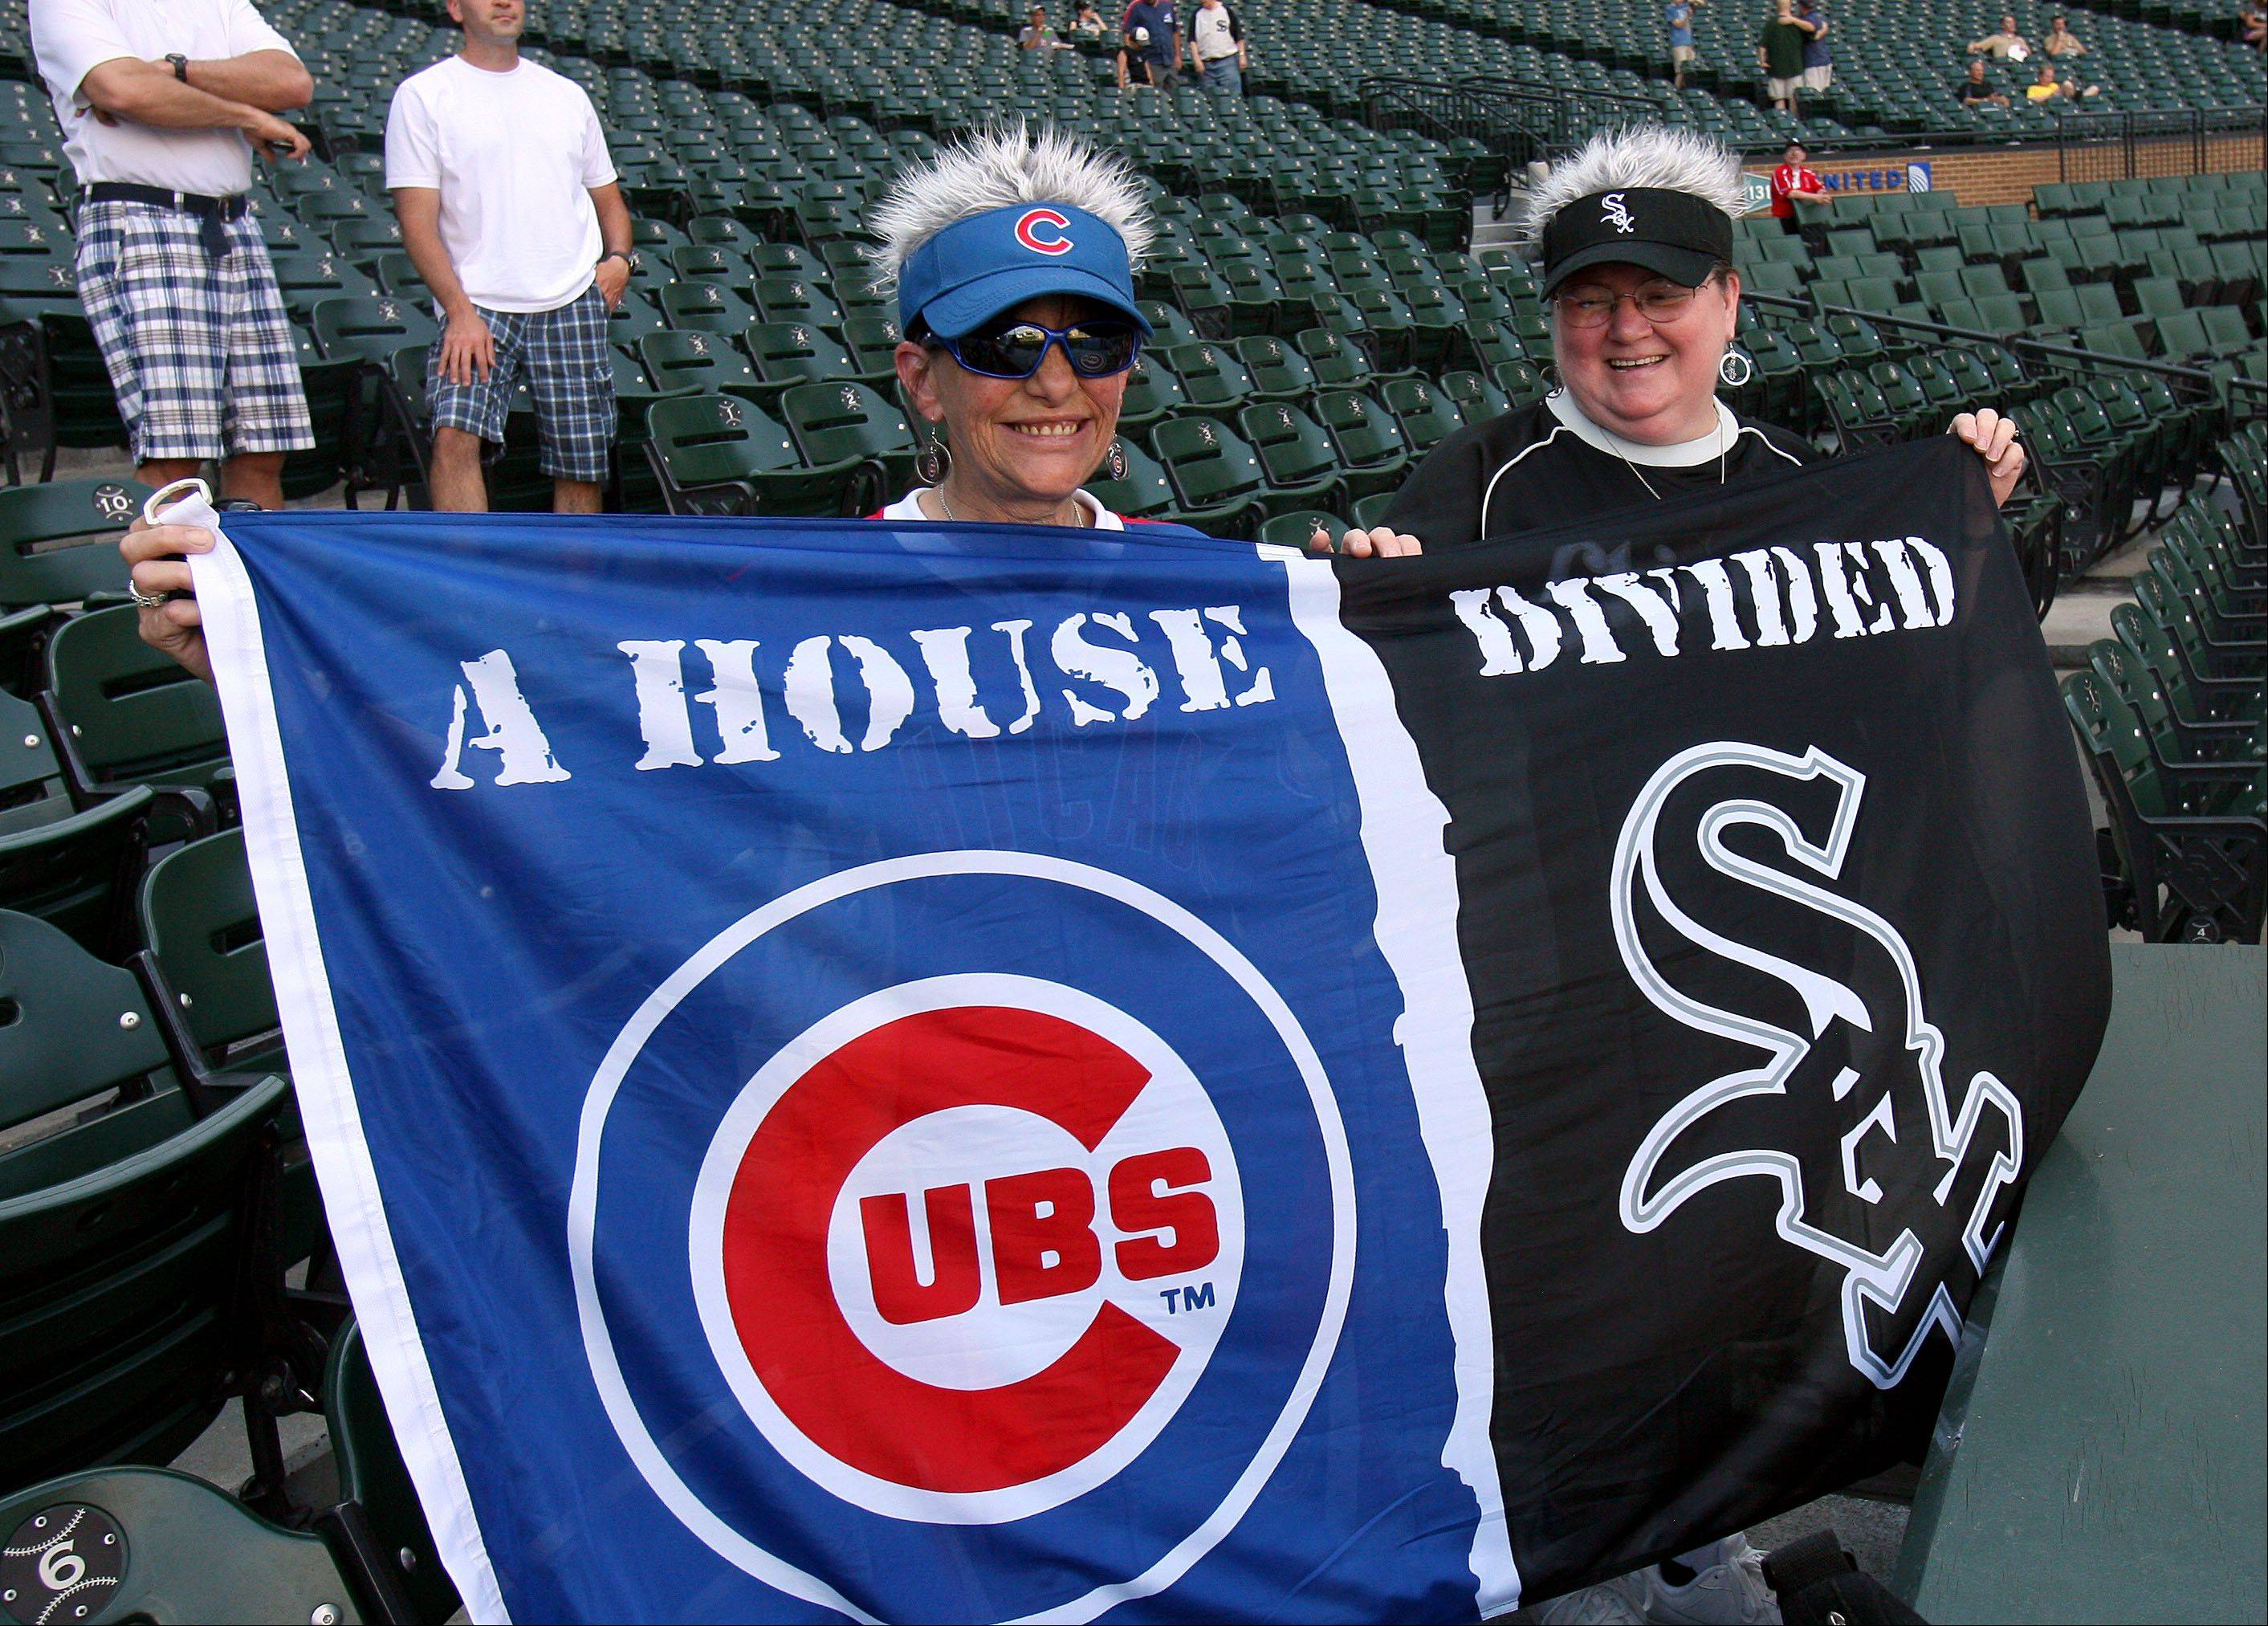 Peggy Sotlin, left, of Landcaster, California and her friend Marie Fobes of Chicago display their allegiances before the game.